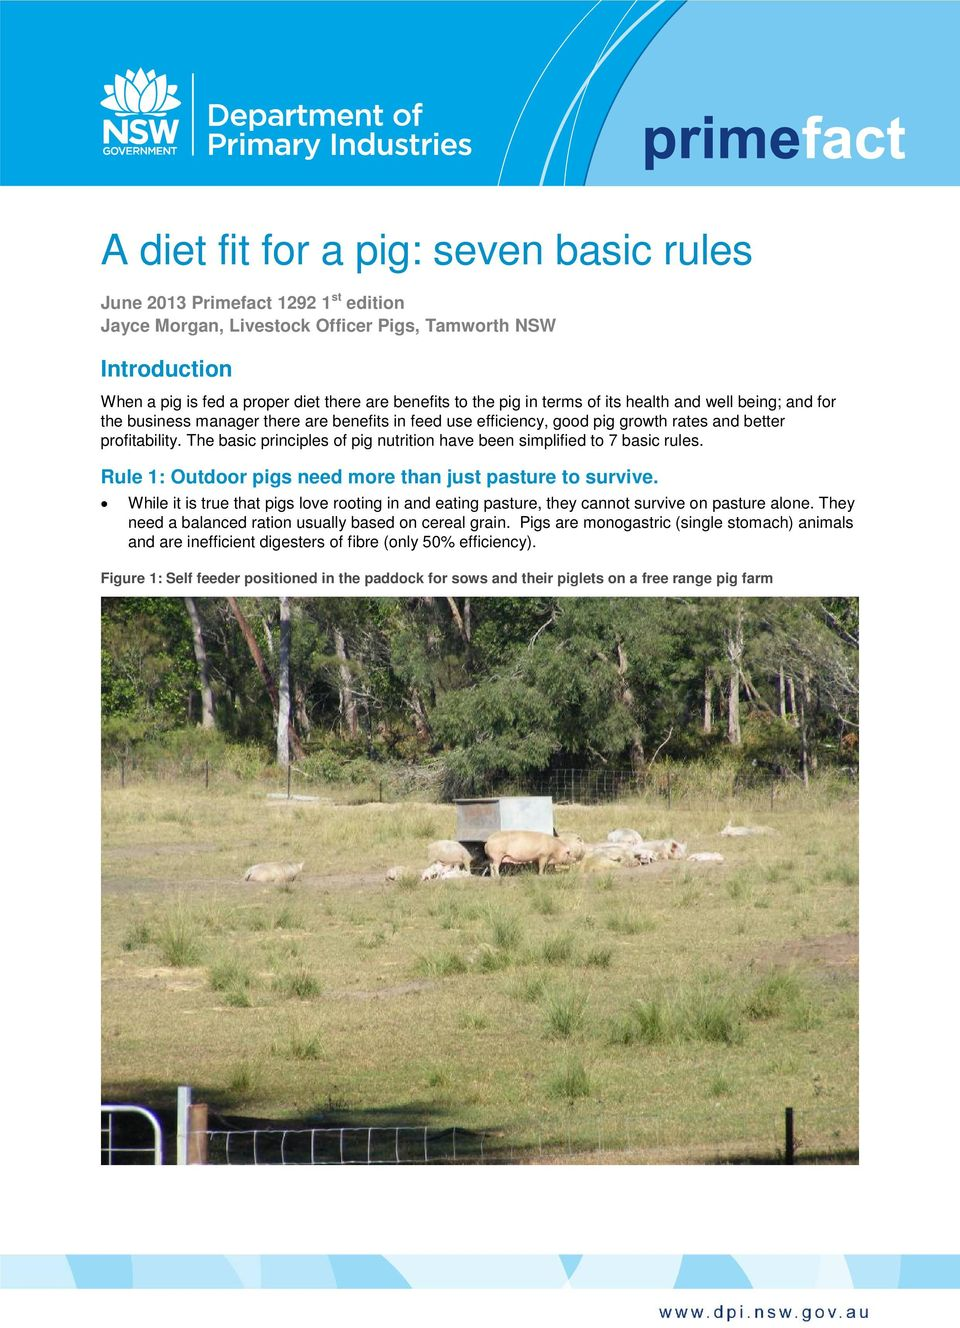 The basic principles of pig nutrition have been simplified to 7 basic rules. Rule 1: Outdoor pigs need more than just pasture to survive.